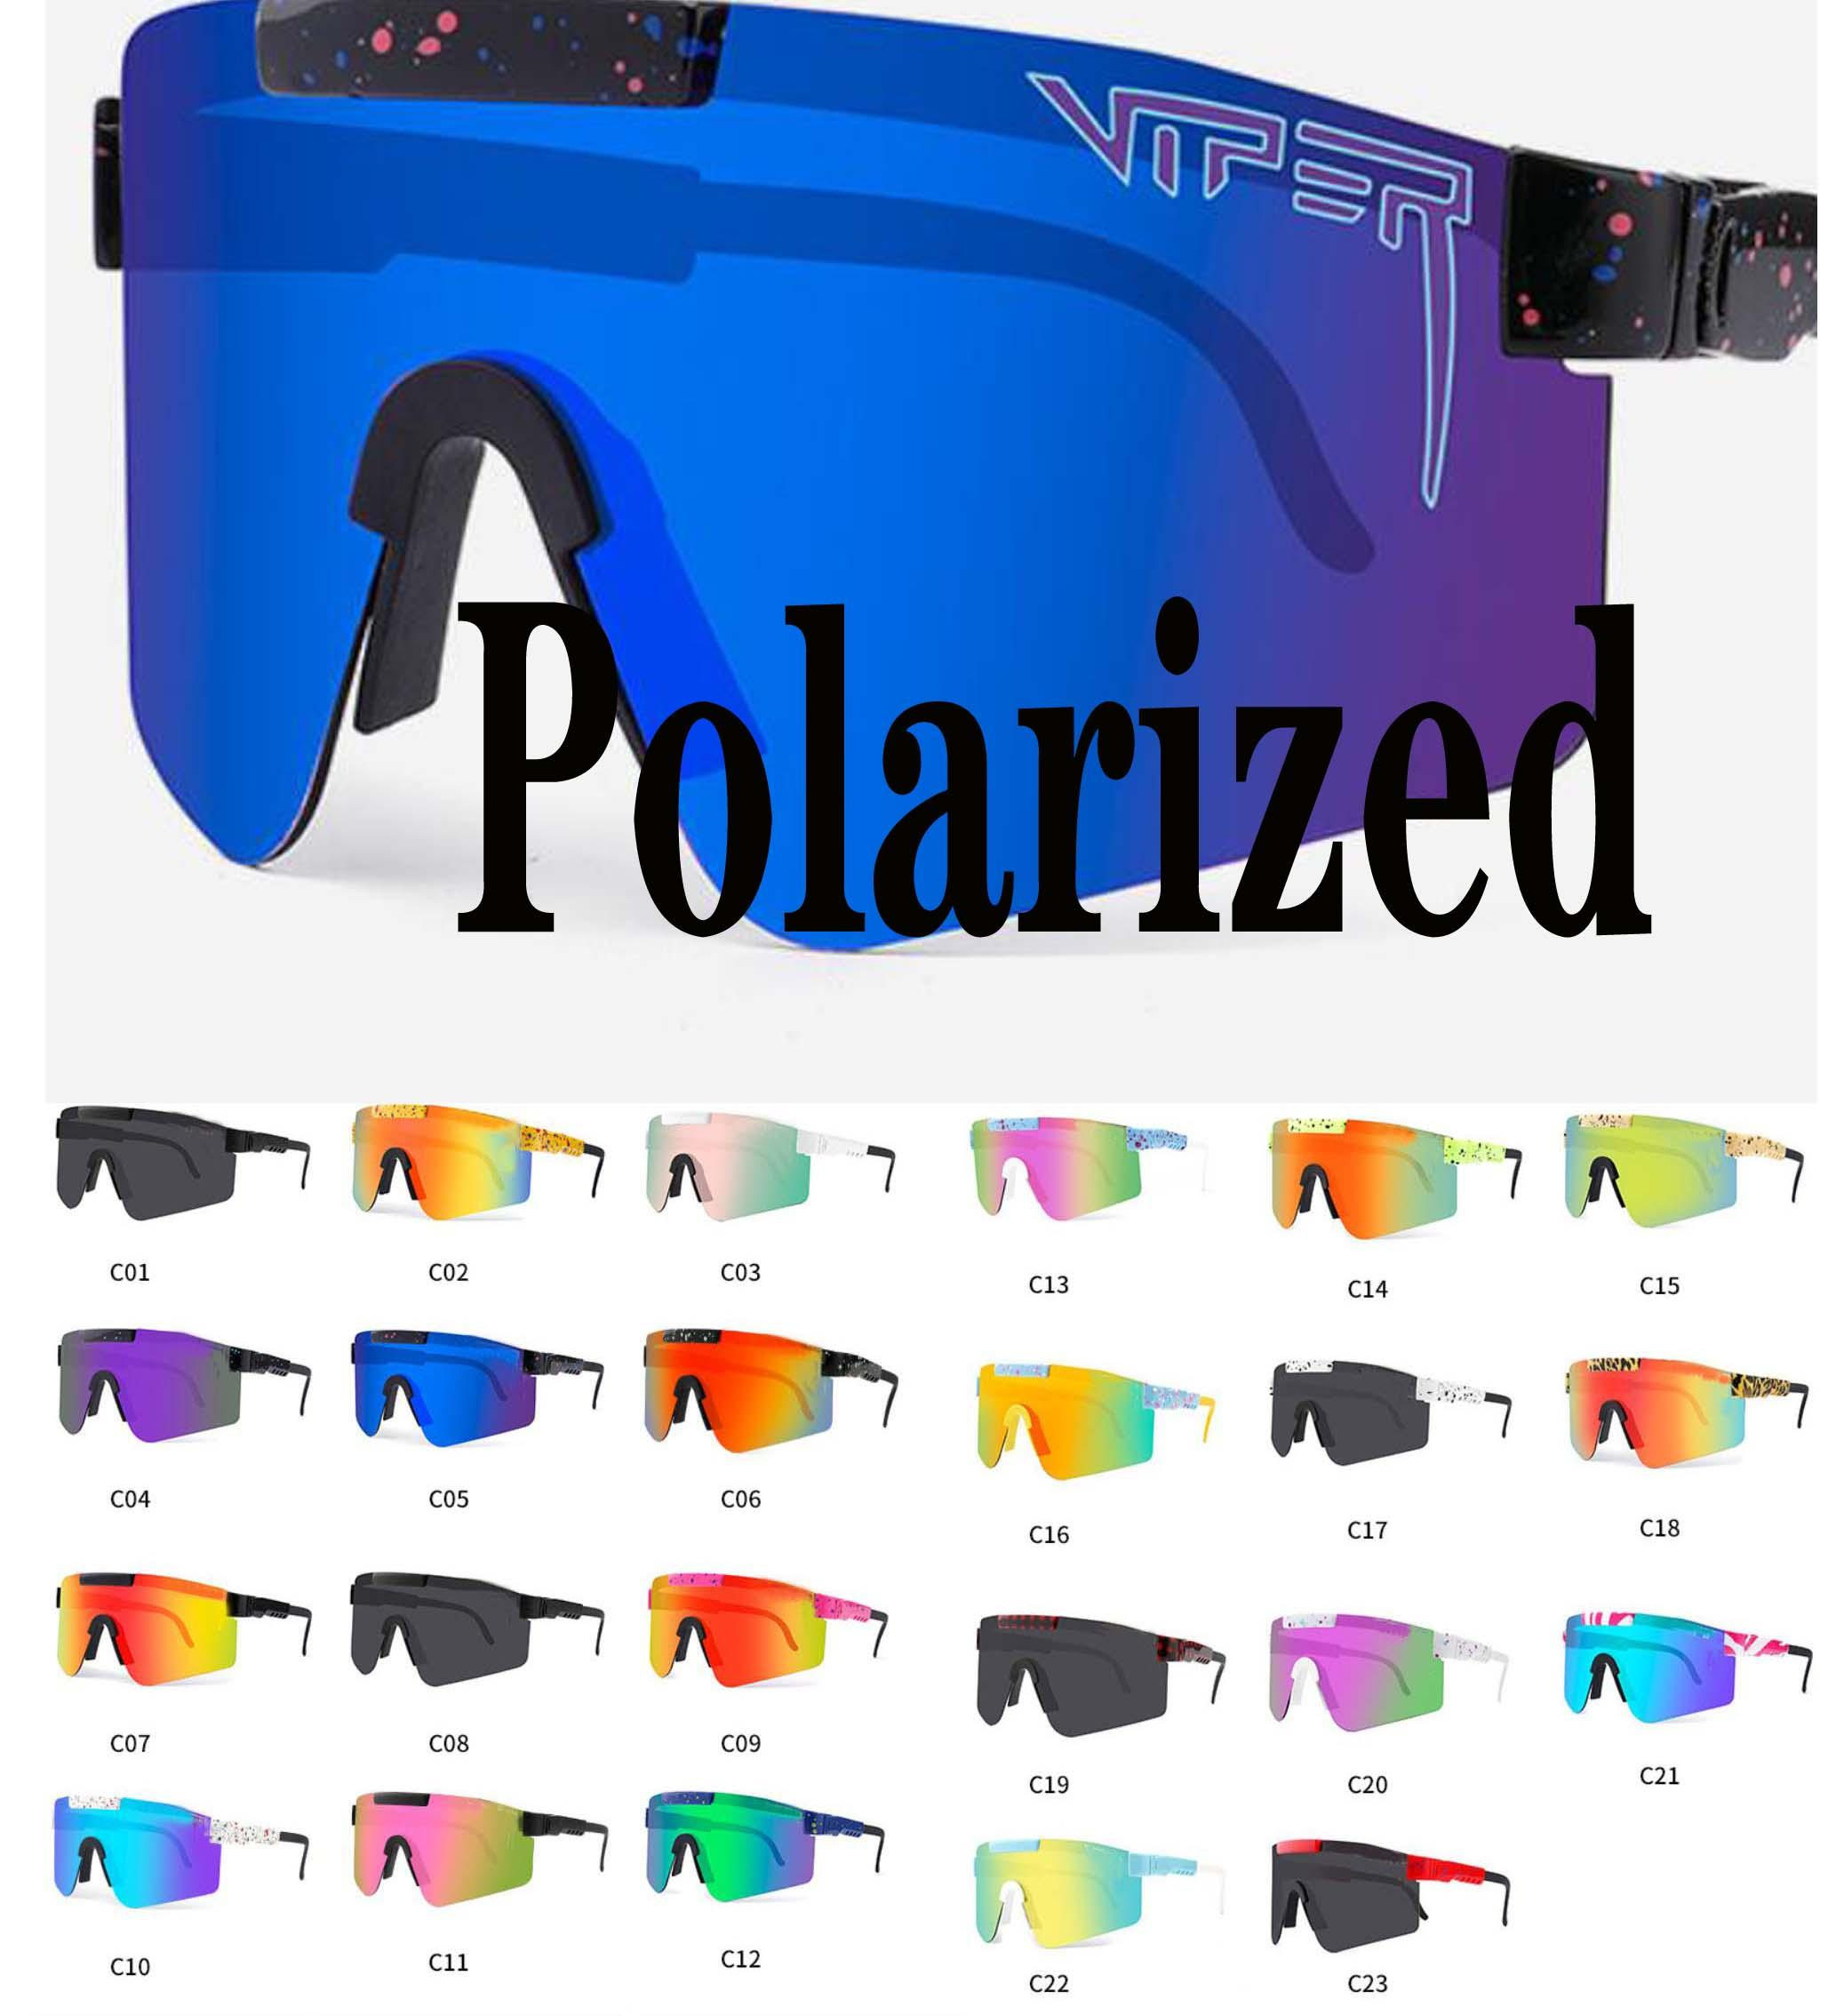 summer fashion man Polarized sunglasses film dazzle lens sports mirror cycling glasses Goggles woman 34COLOr outdoor windproof sun glasse with case polarizing